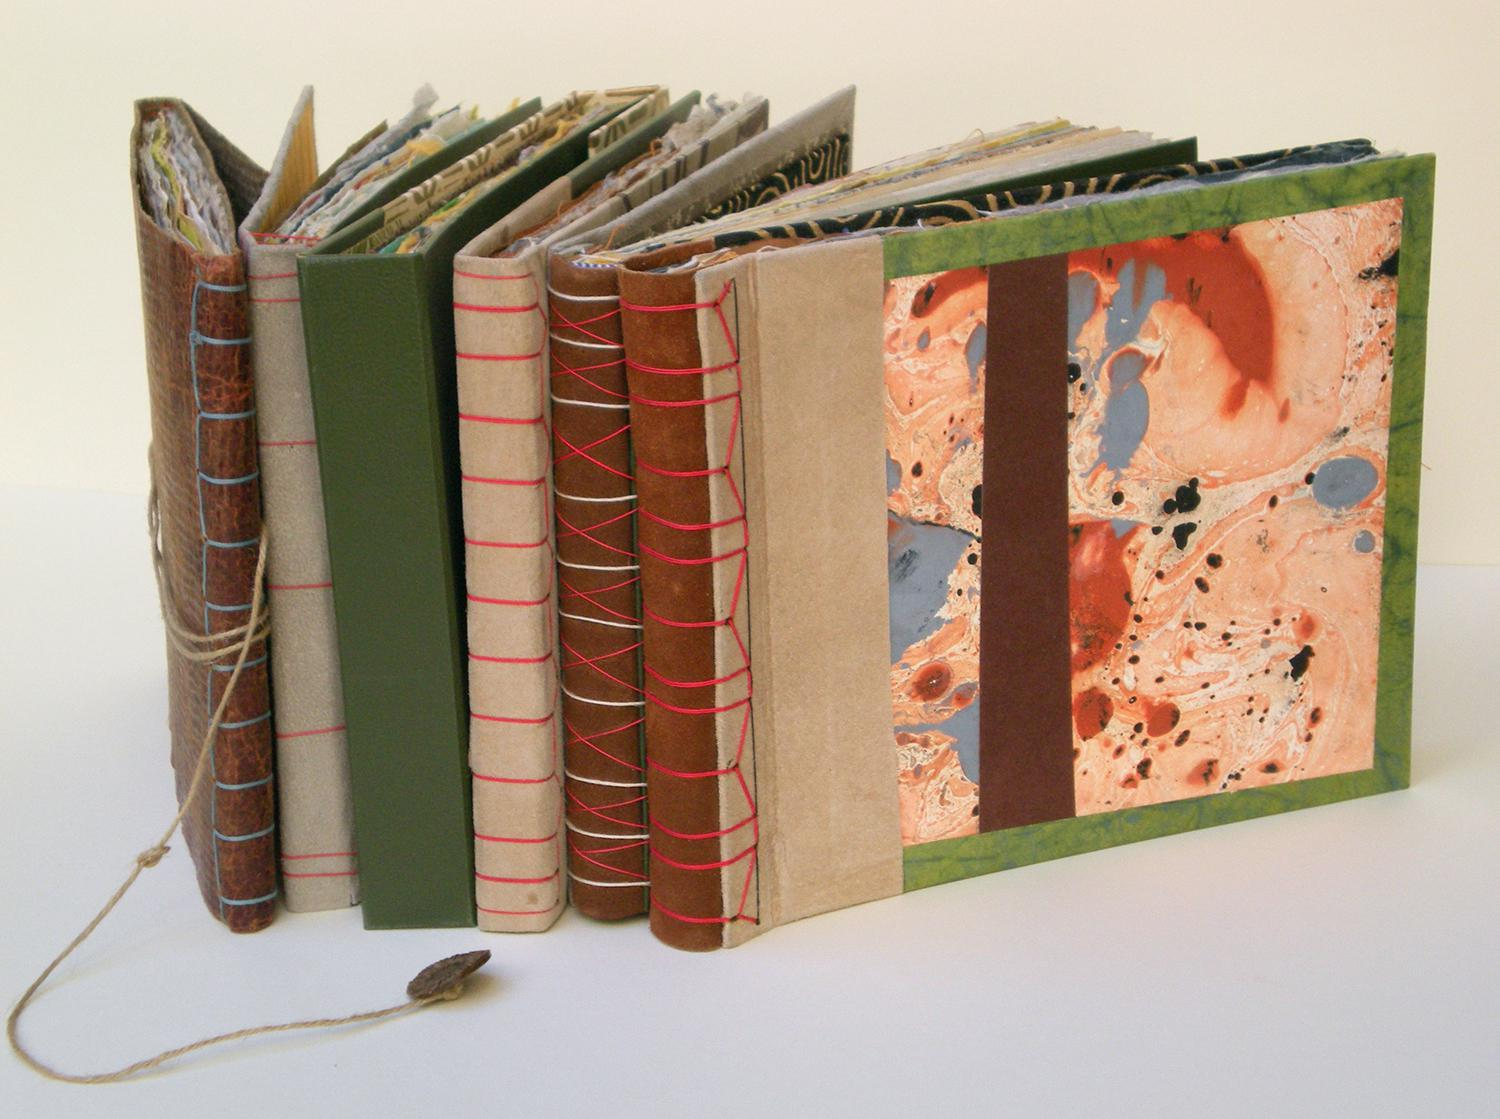 theodore_lalos__artists_books_far_east_2013_2